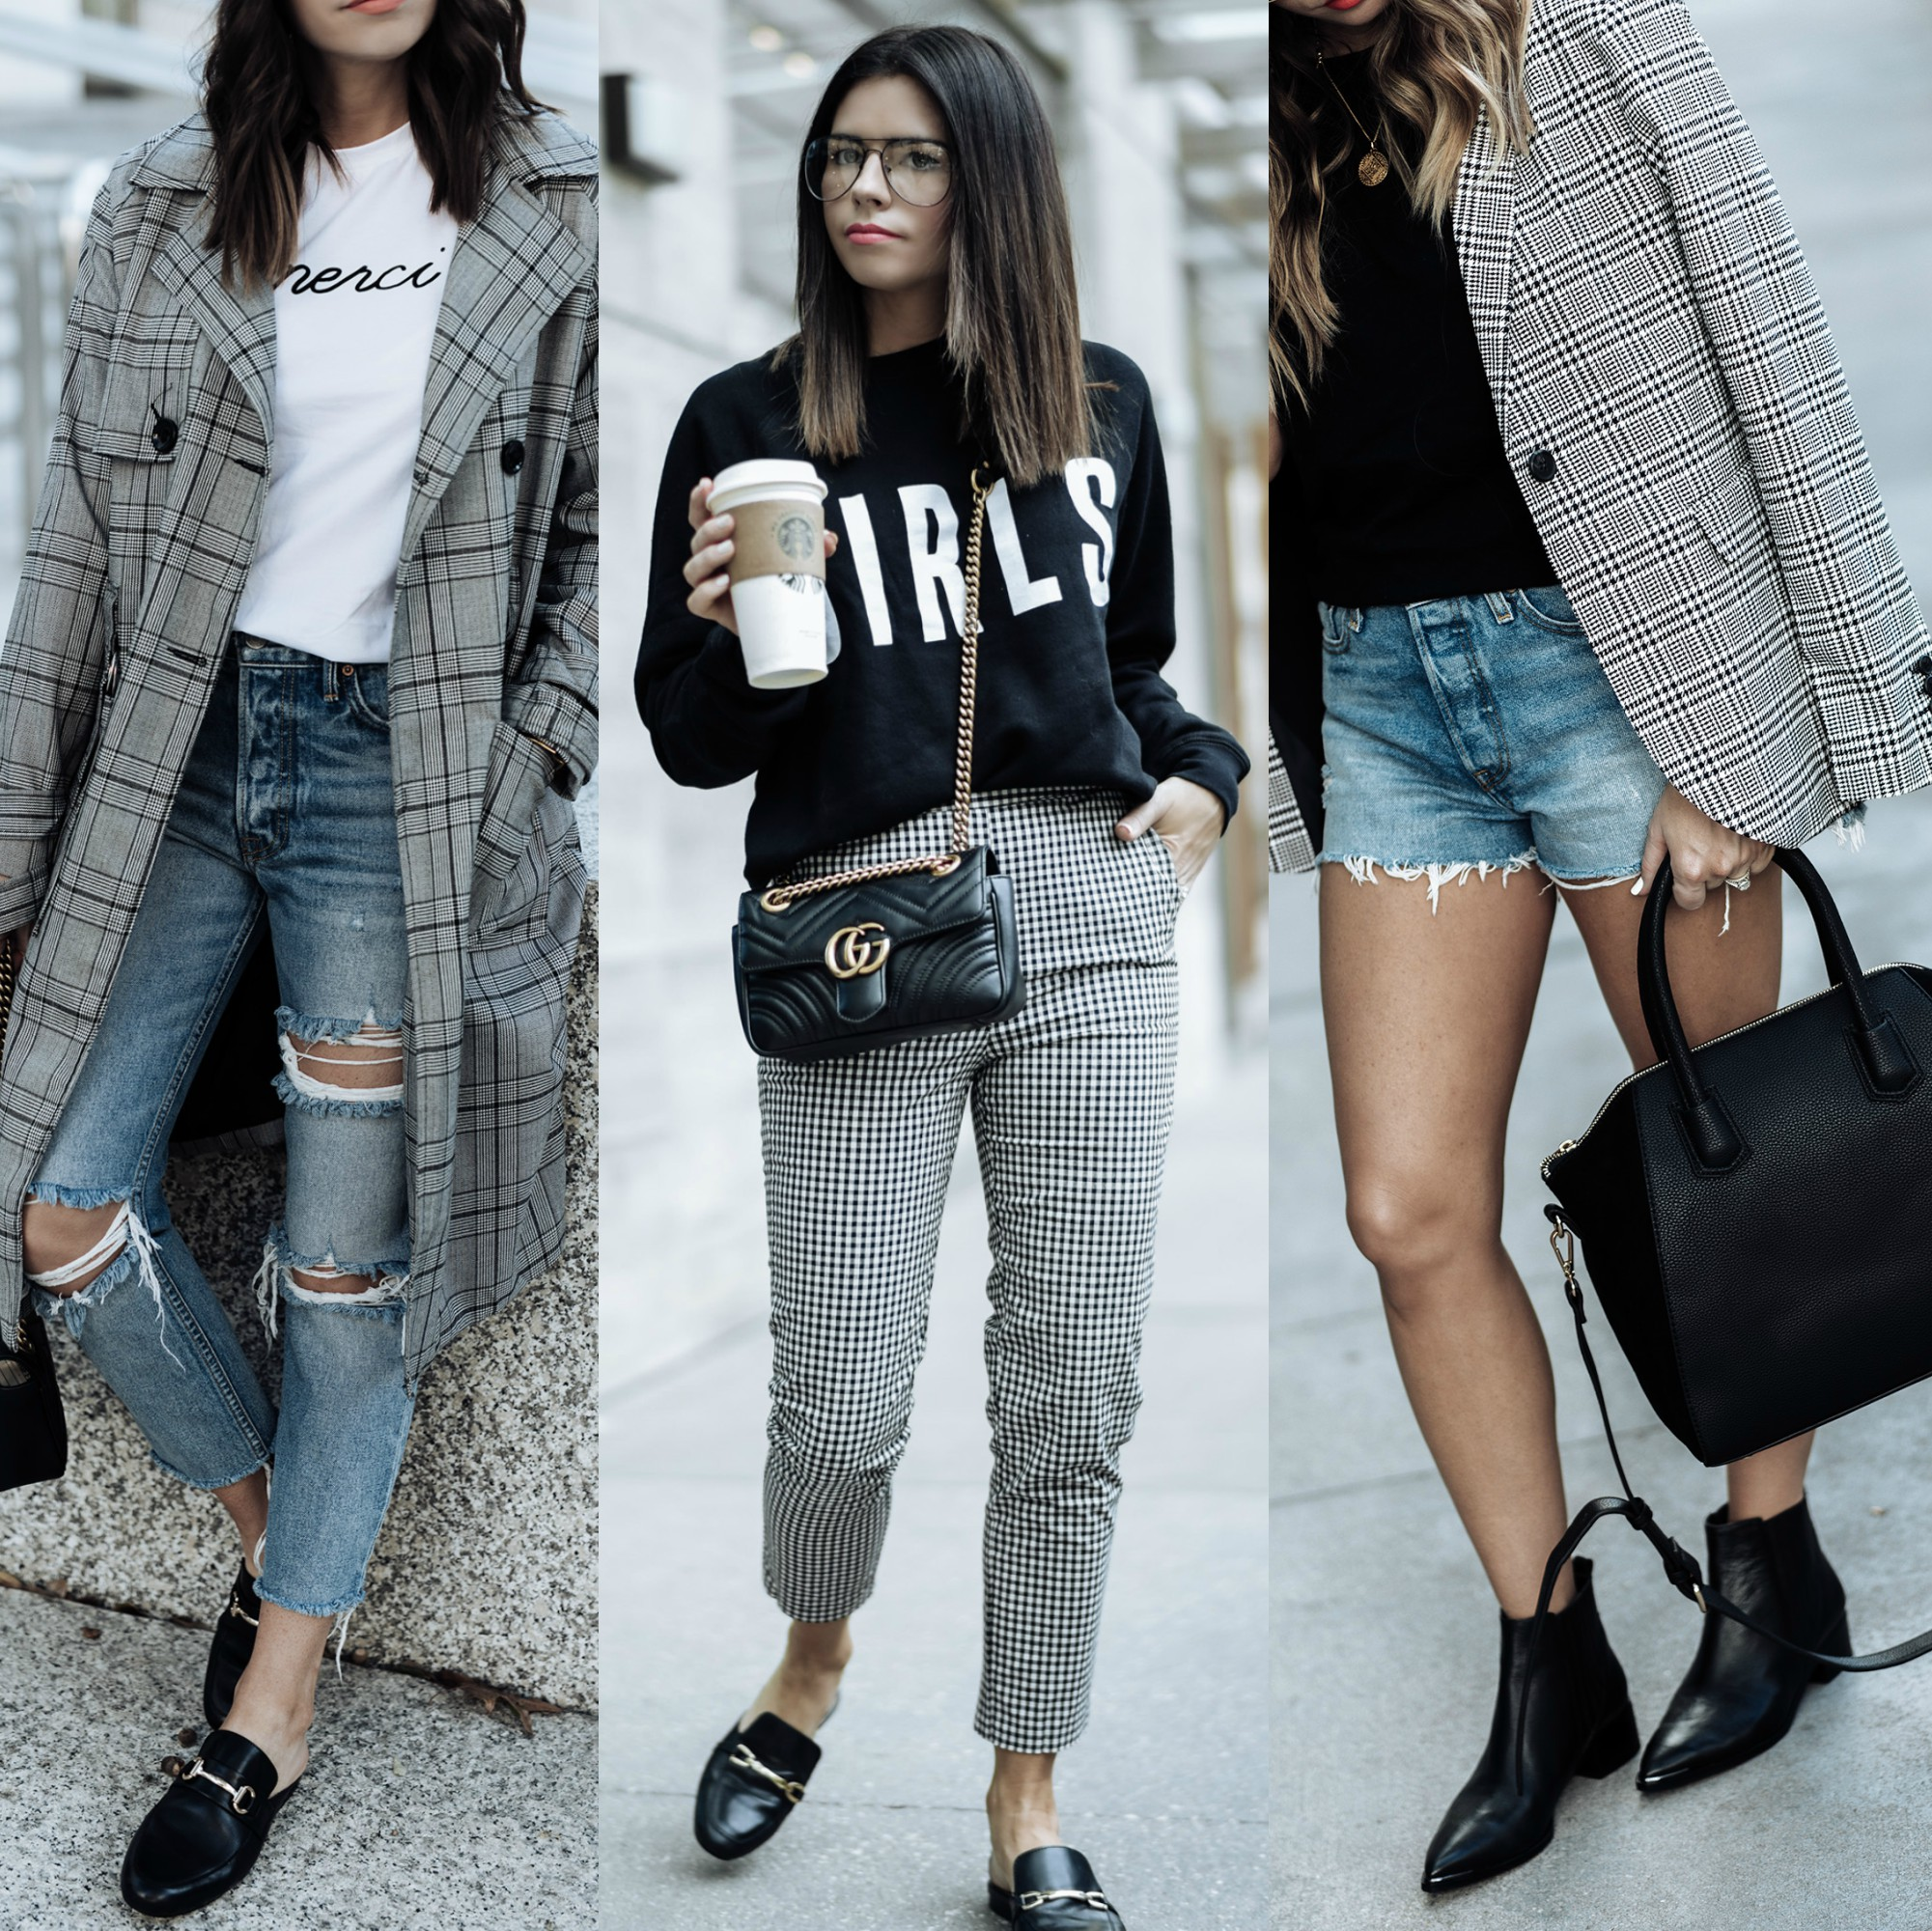 3 check print pieces for under $100 |Tiffany Jais fashion and lifestyle blogger of Flaunt and Center | Houston fashion blogger | Streetstyle blog | Personal style online